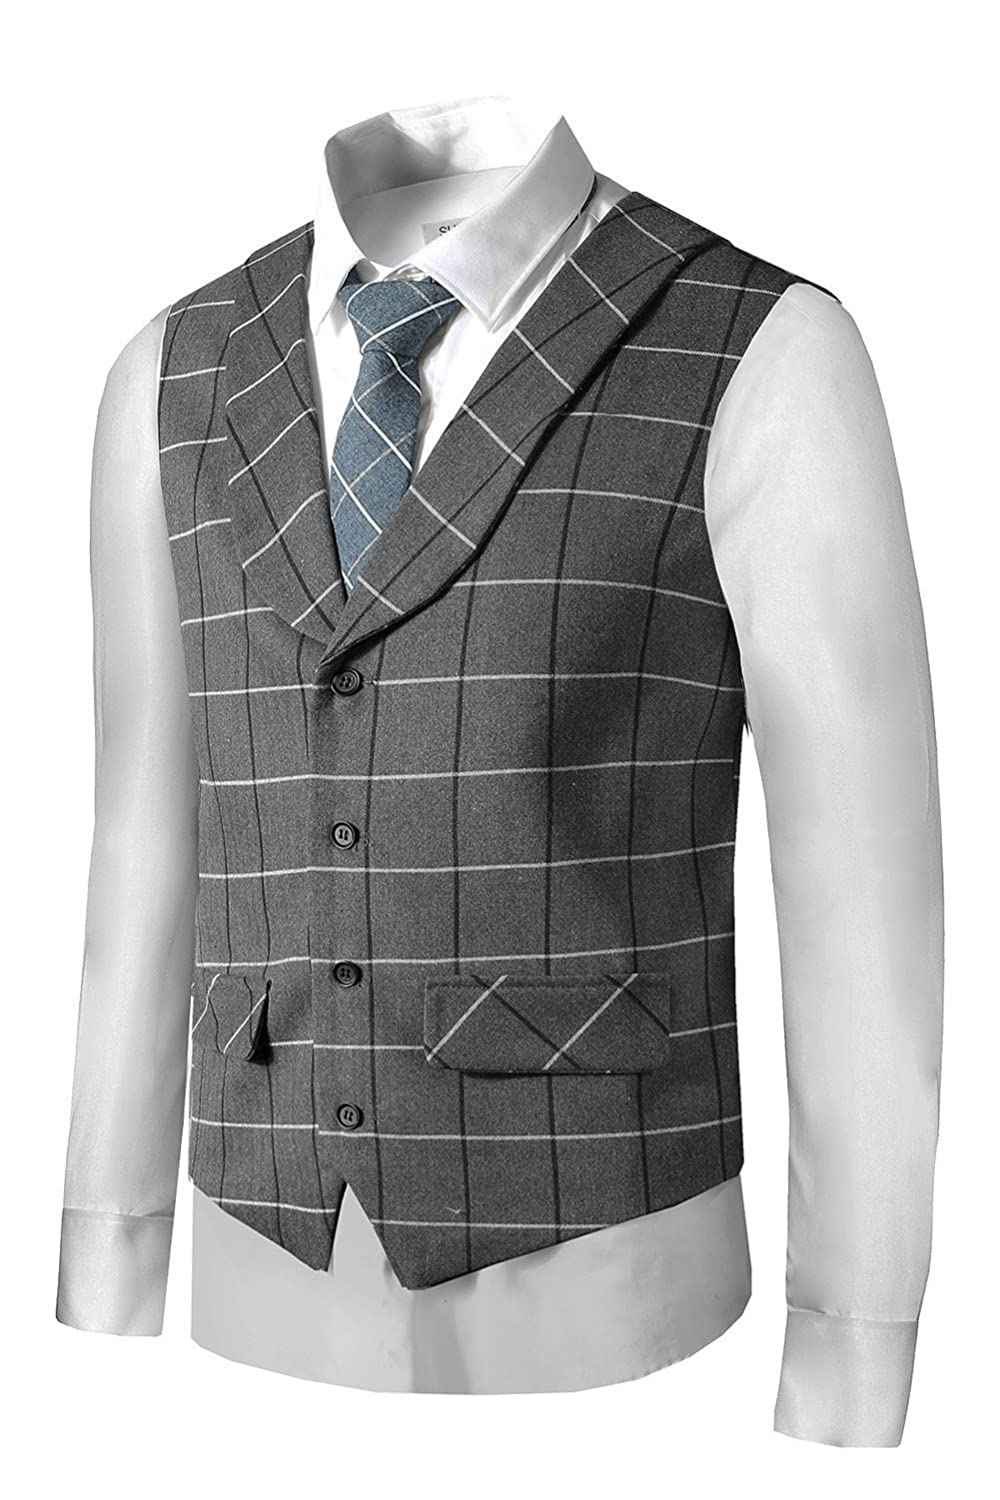 Men's Vintage Inspired Vests Hanayome Mens Gentleman Top Design Casual Waistcoat Business Suit Vest VS17 $28.50 AT vintagedancer.com